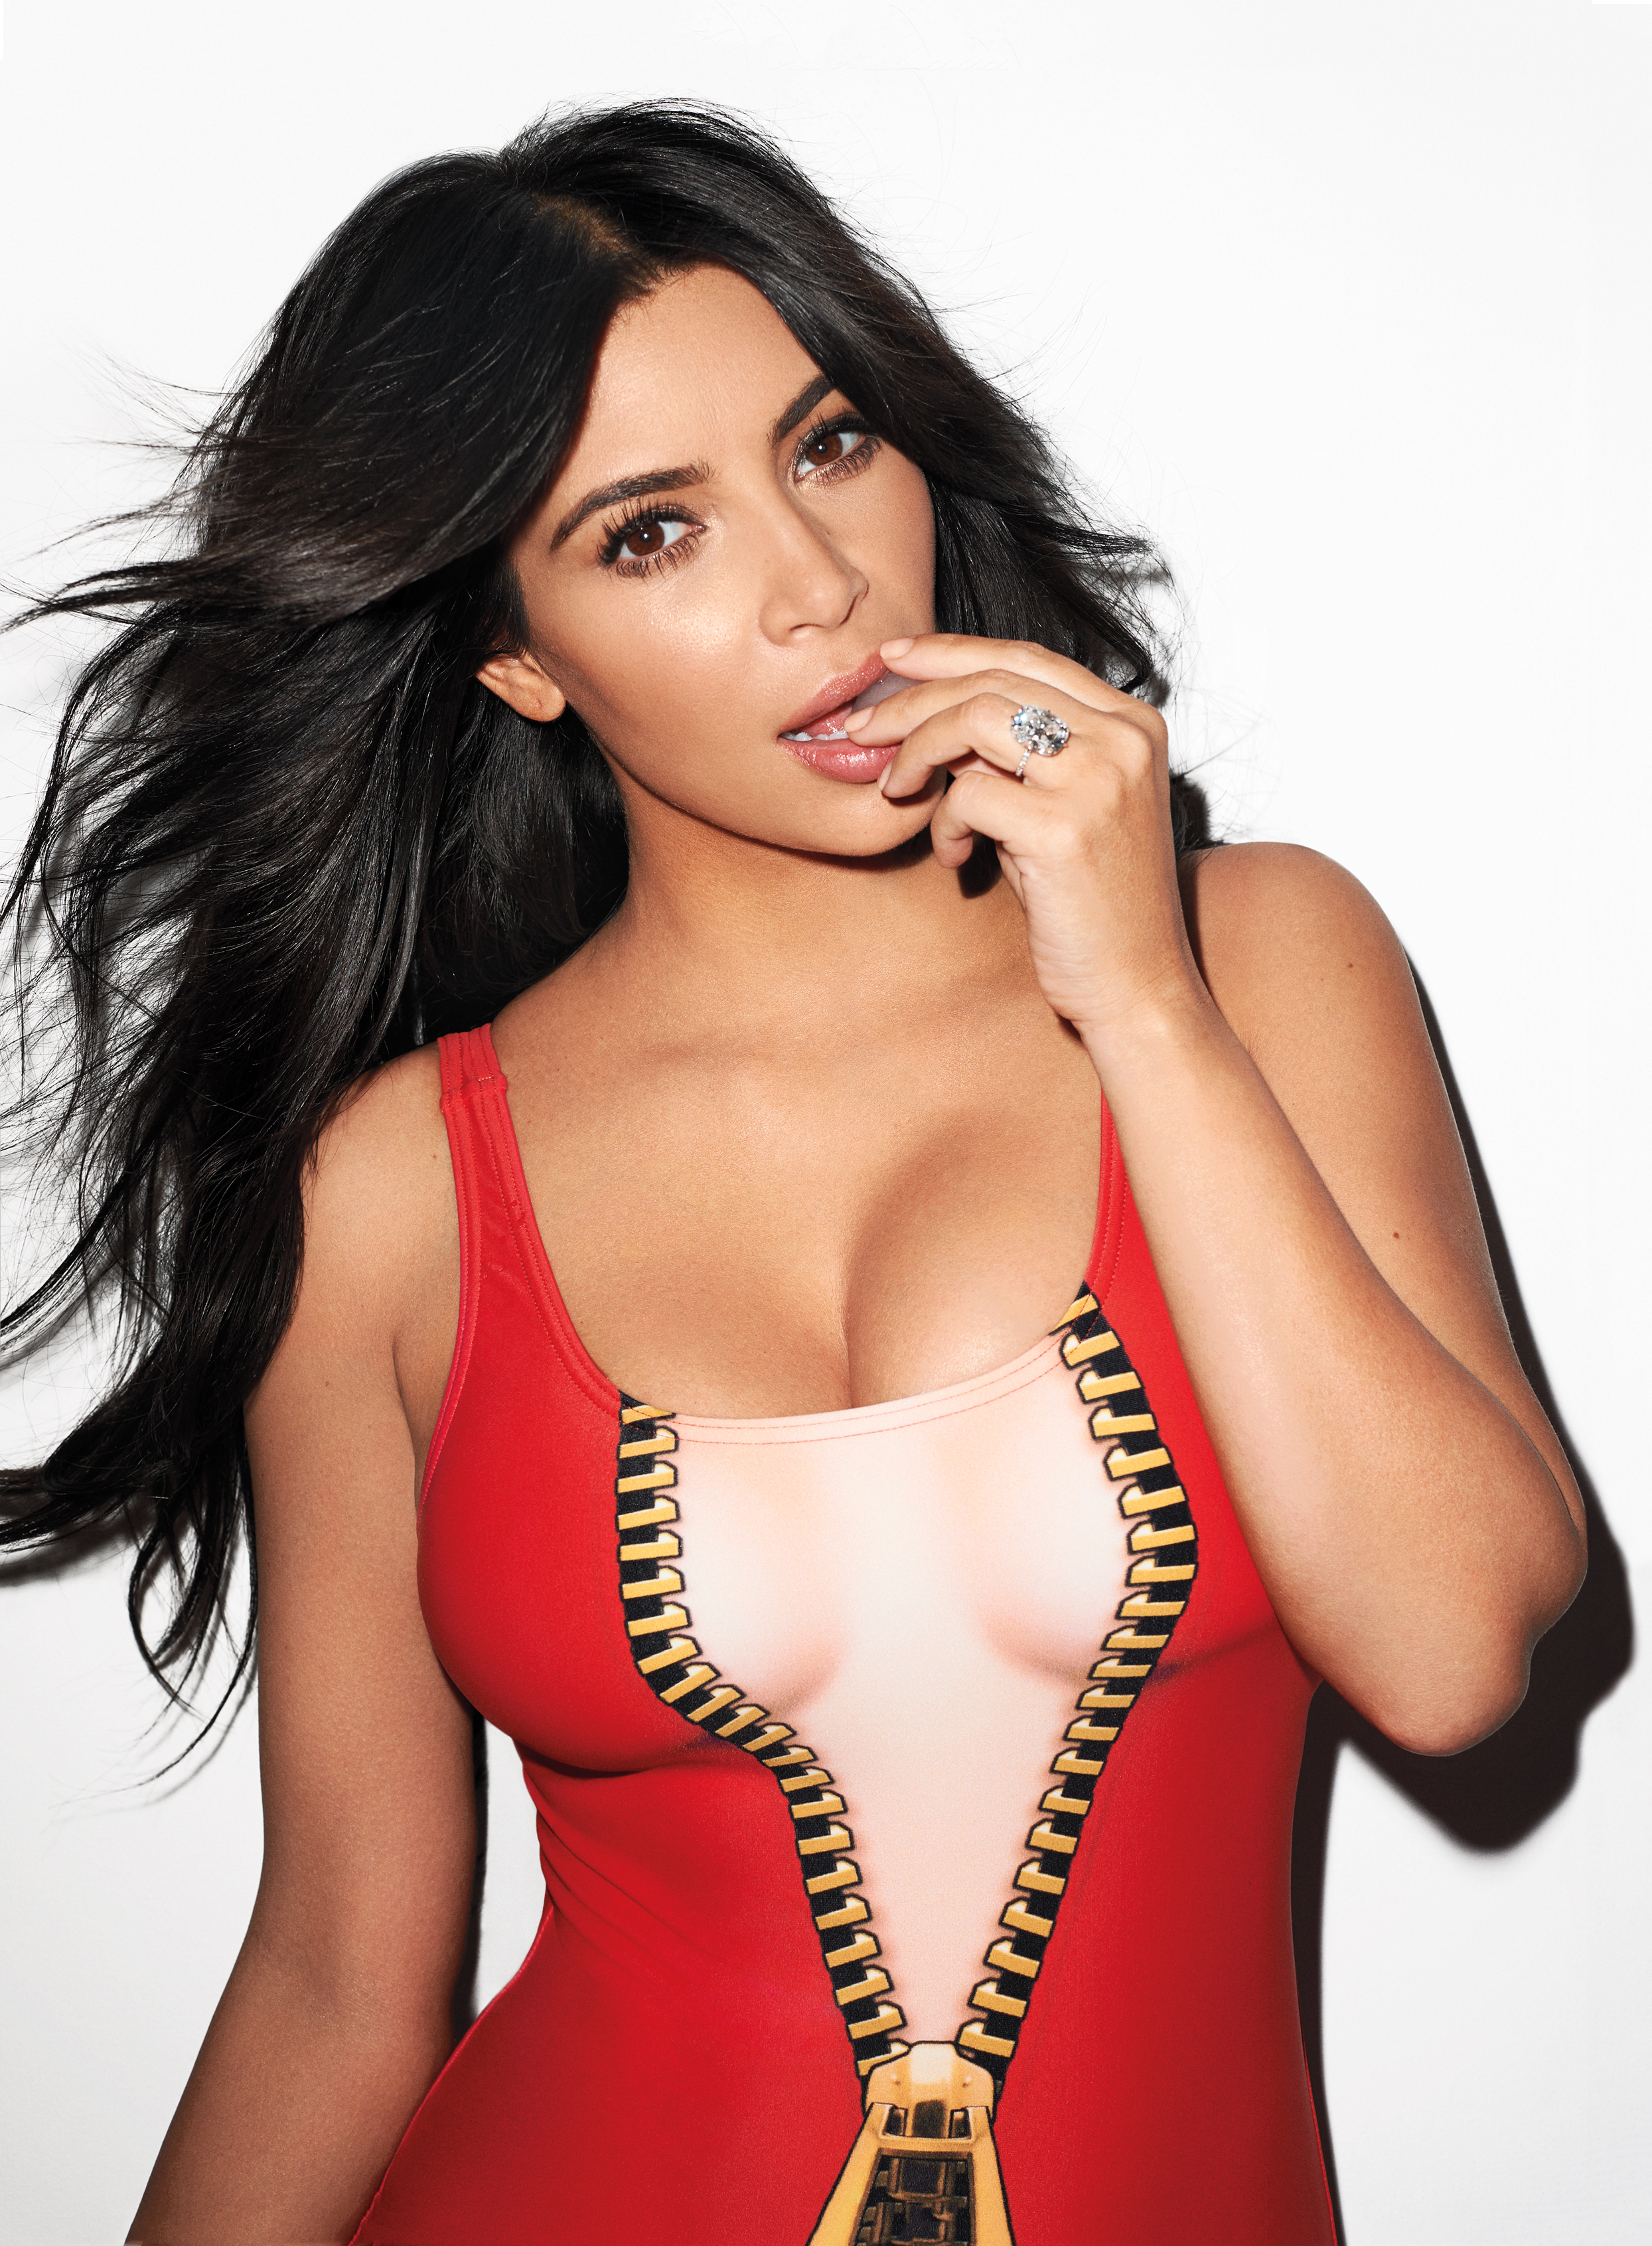 Kim Kardashian Gets Real 11 Revelations From The New Cover Story